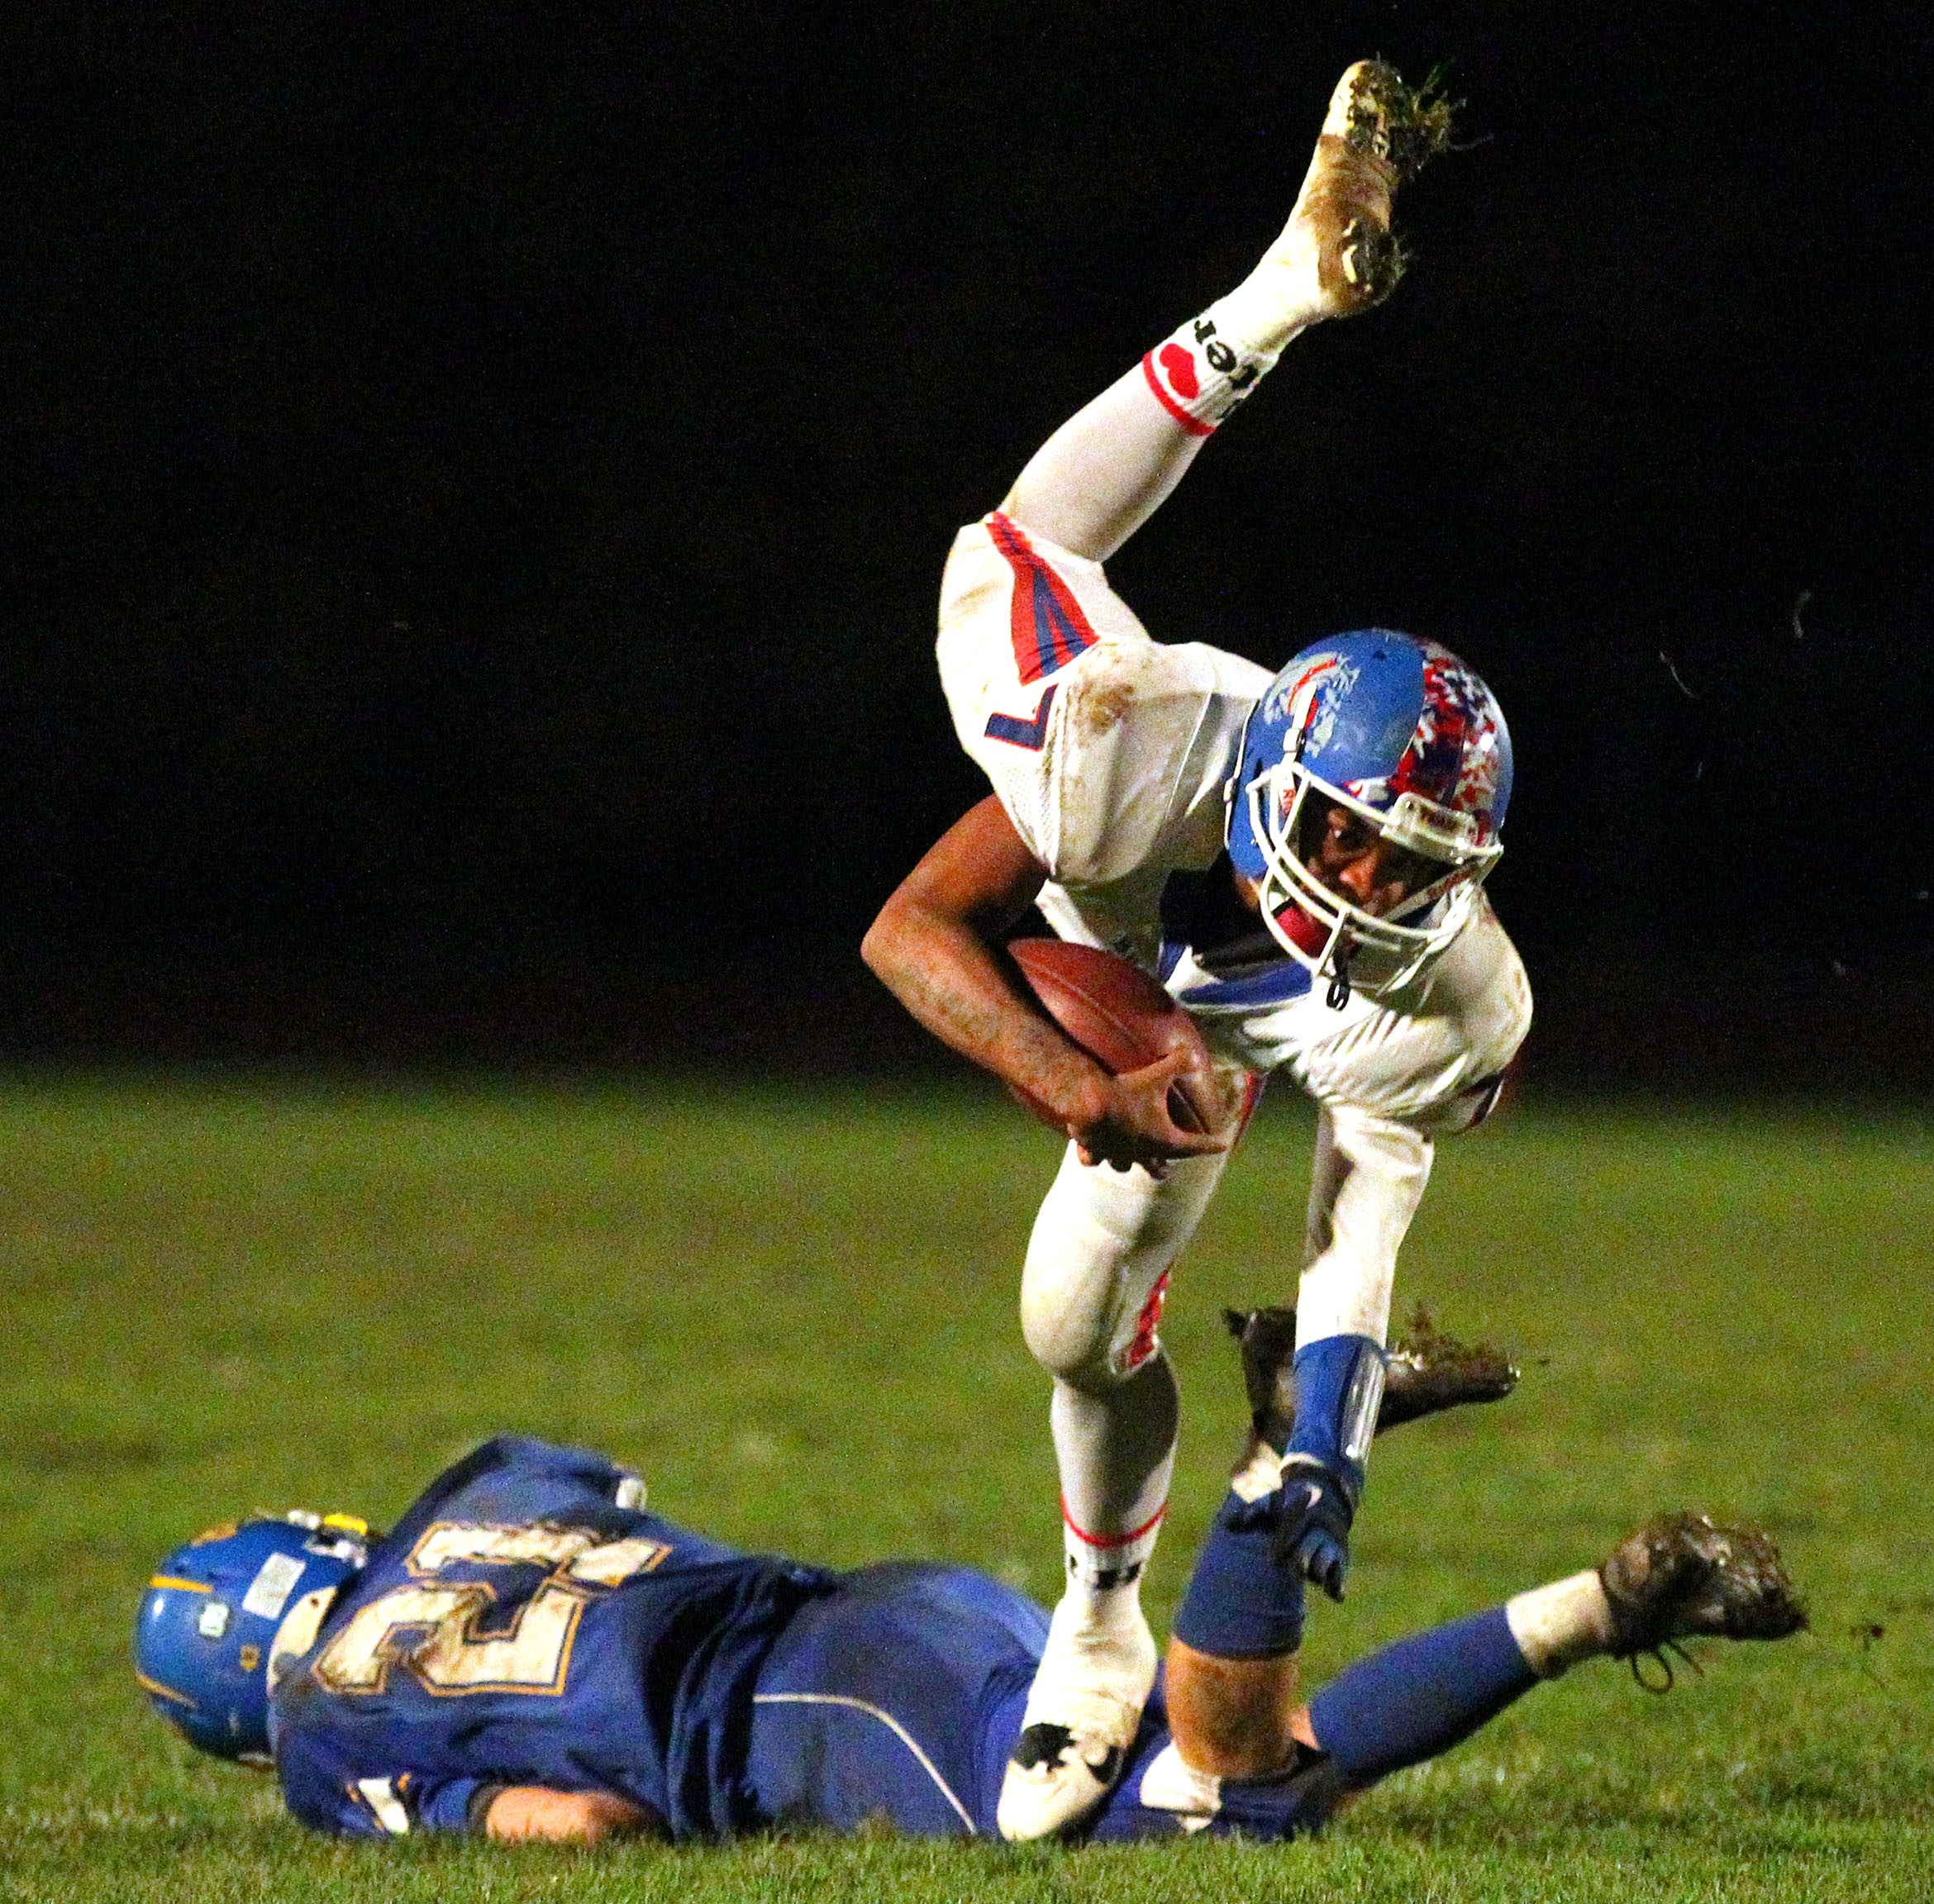 Burgard's Rayshawn Jones gets tripped up by Alden's Lyle Grant in the first half of the game at Alden on Friday.